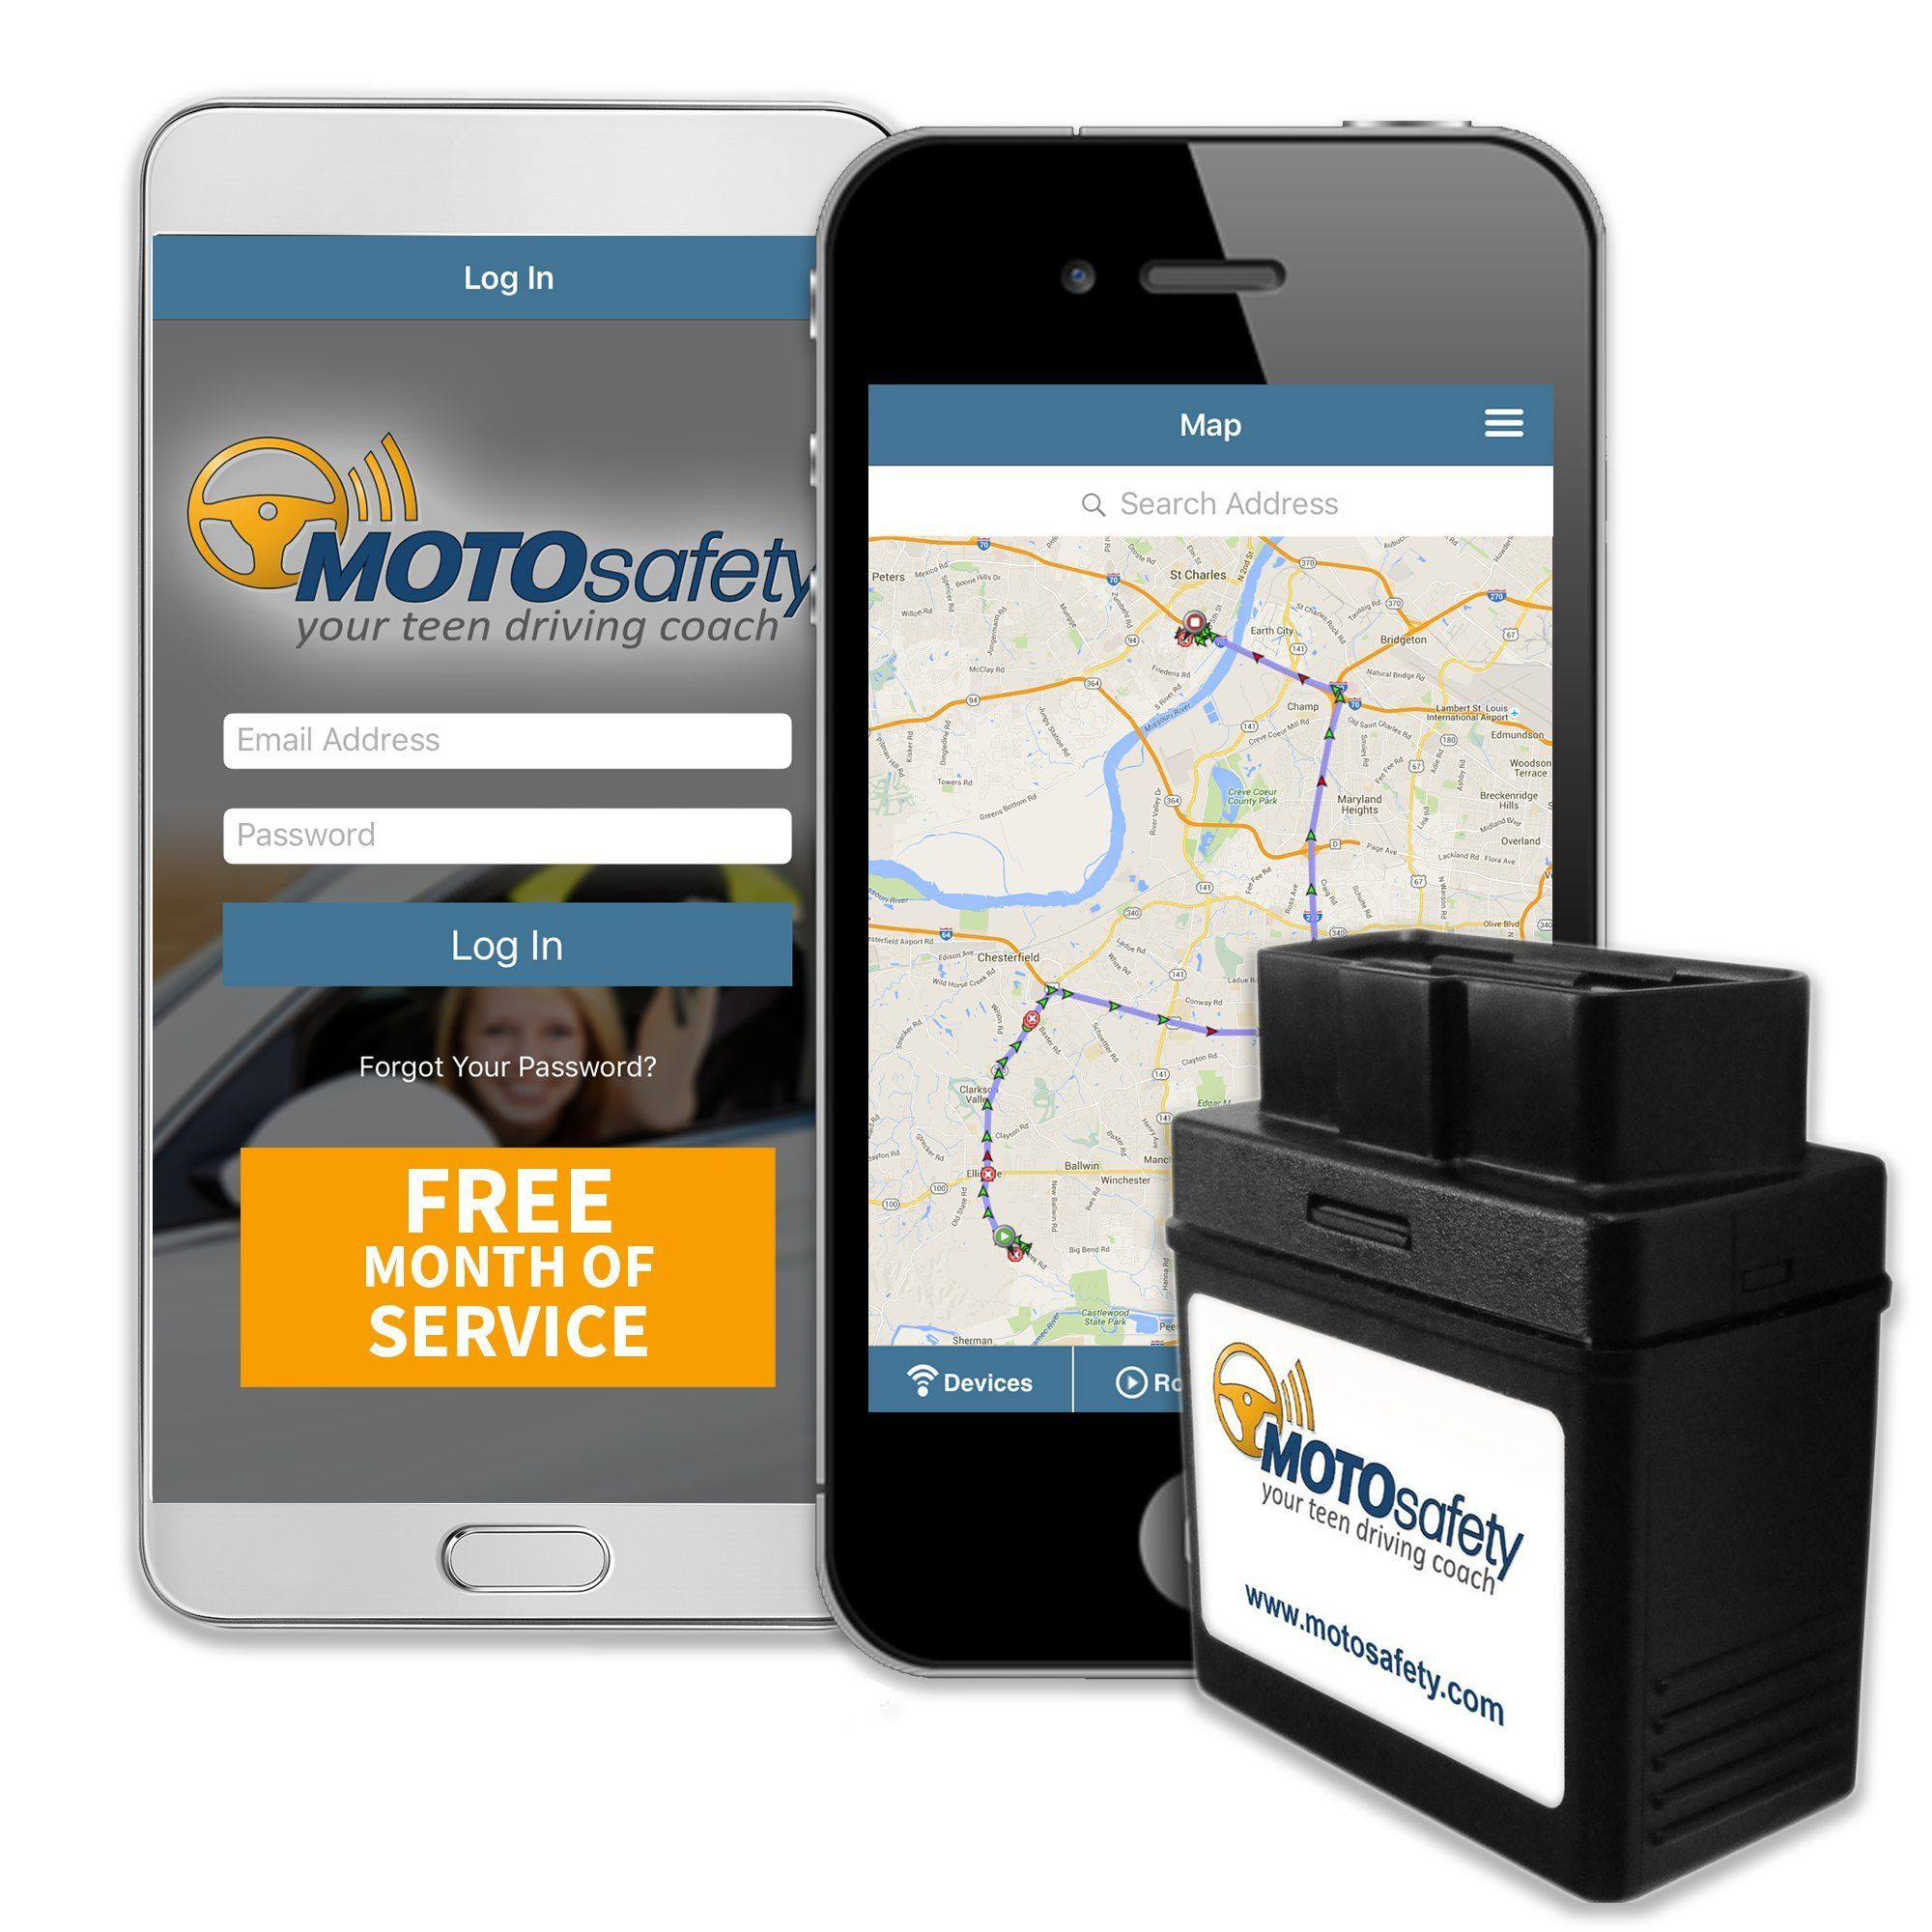 MOTOsafety OBD 3G Car Tracker with FREE Month of Service